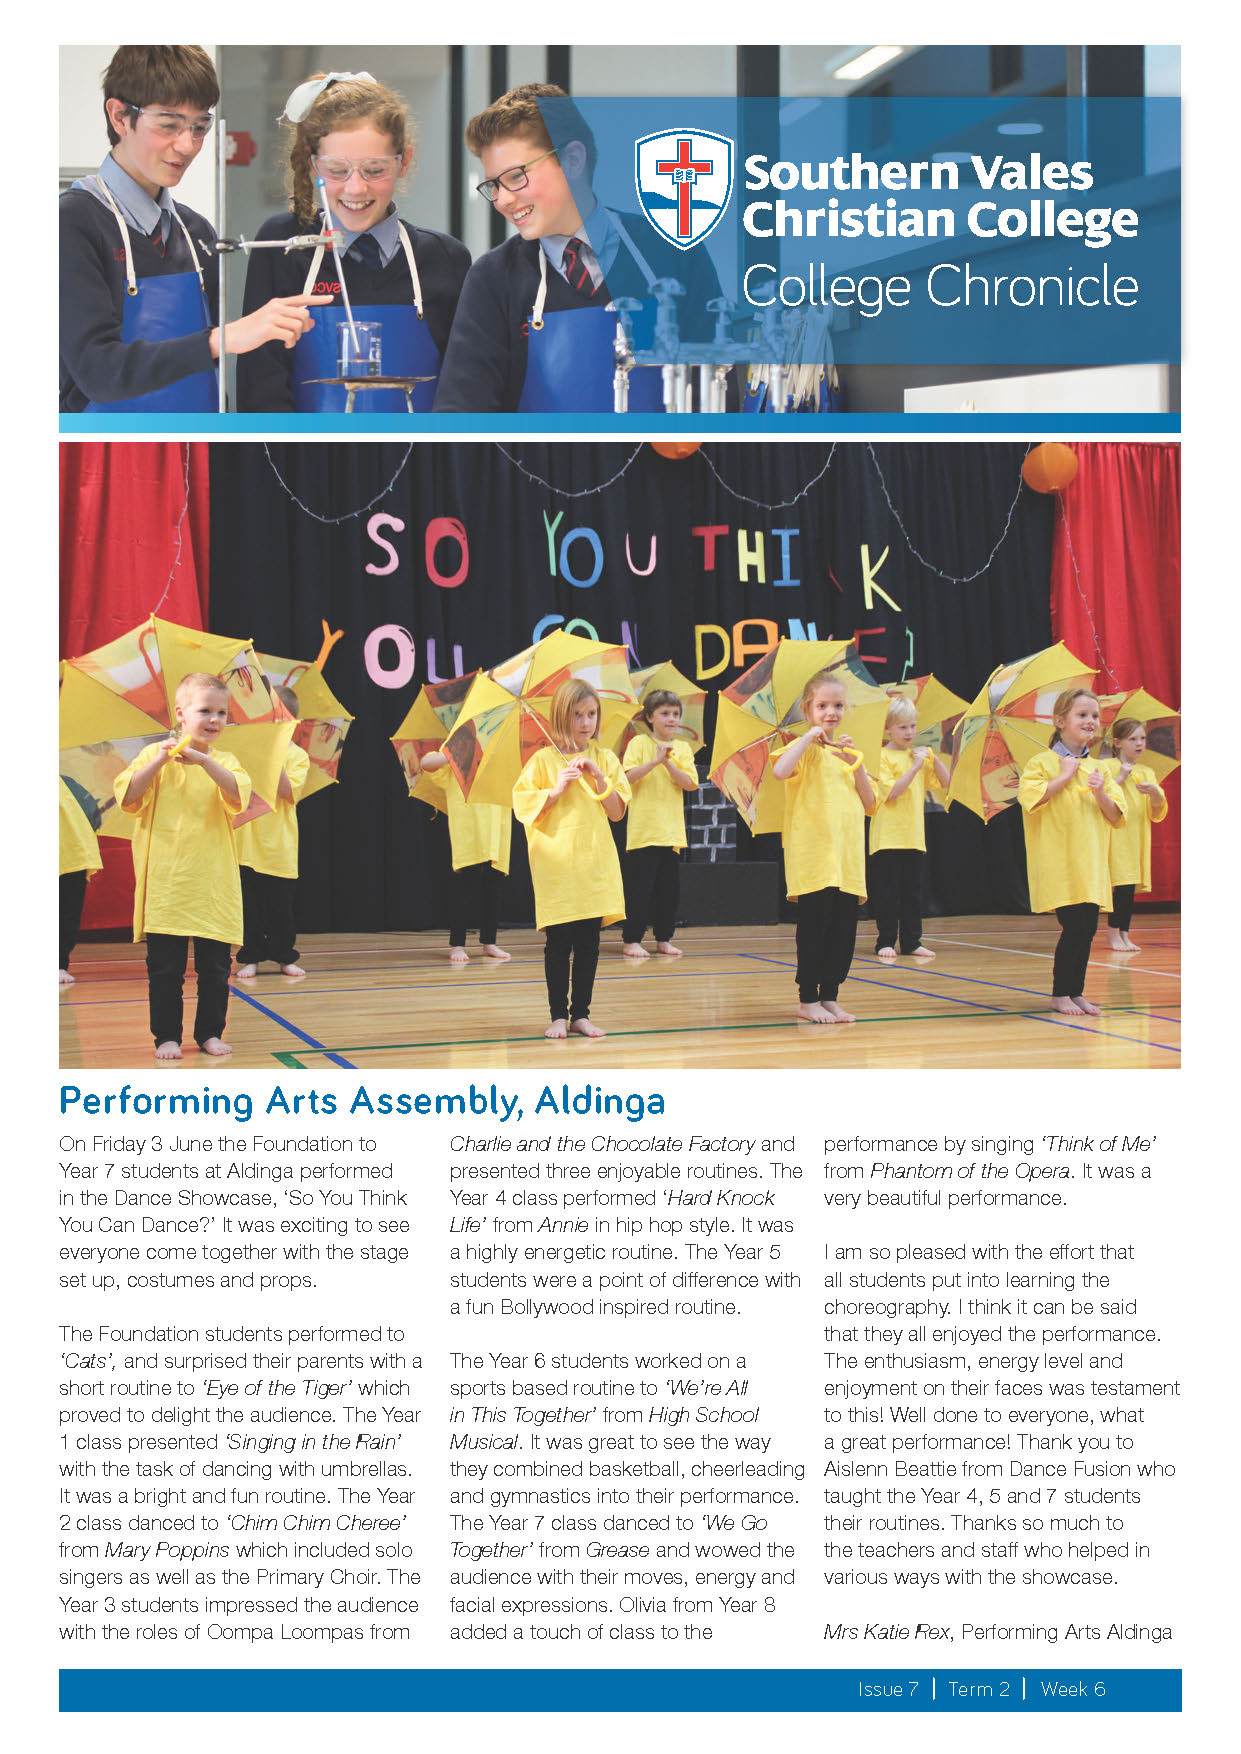 College Chronicle Issue 7 2016_Page_1.jpg